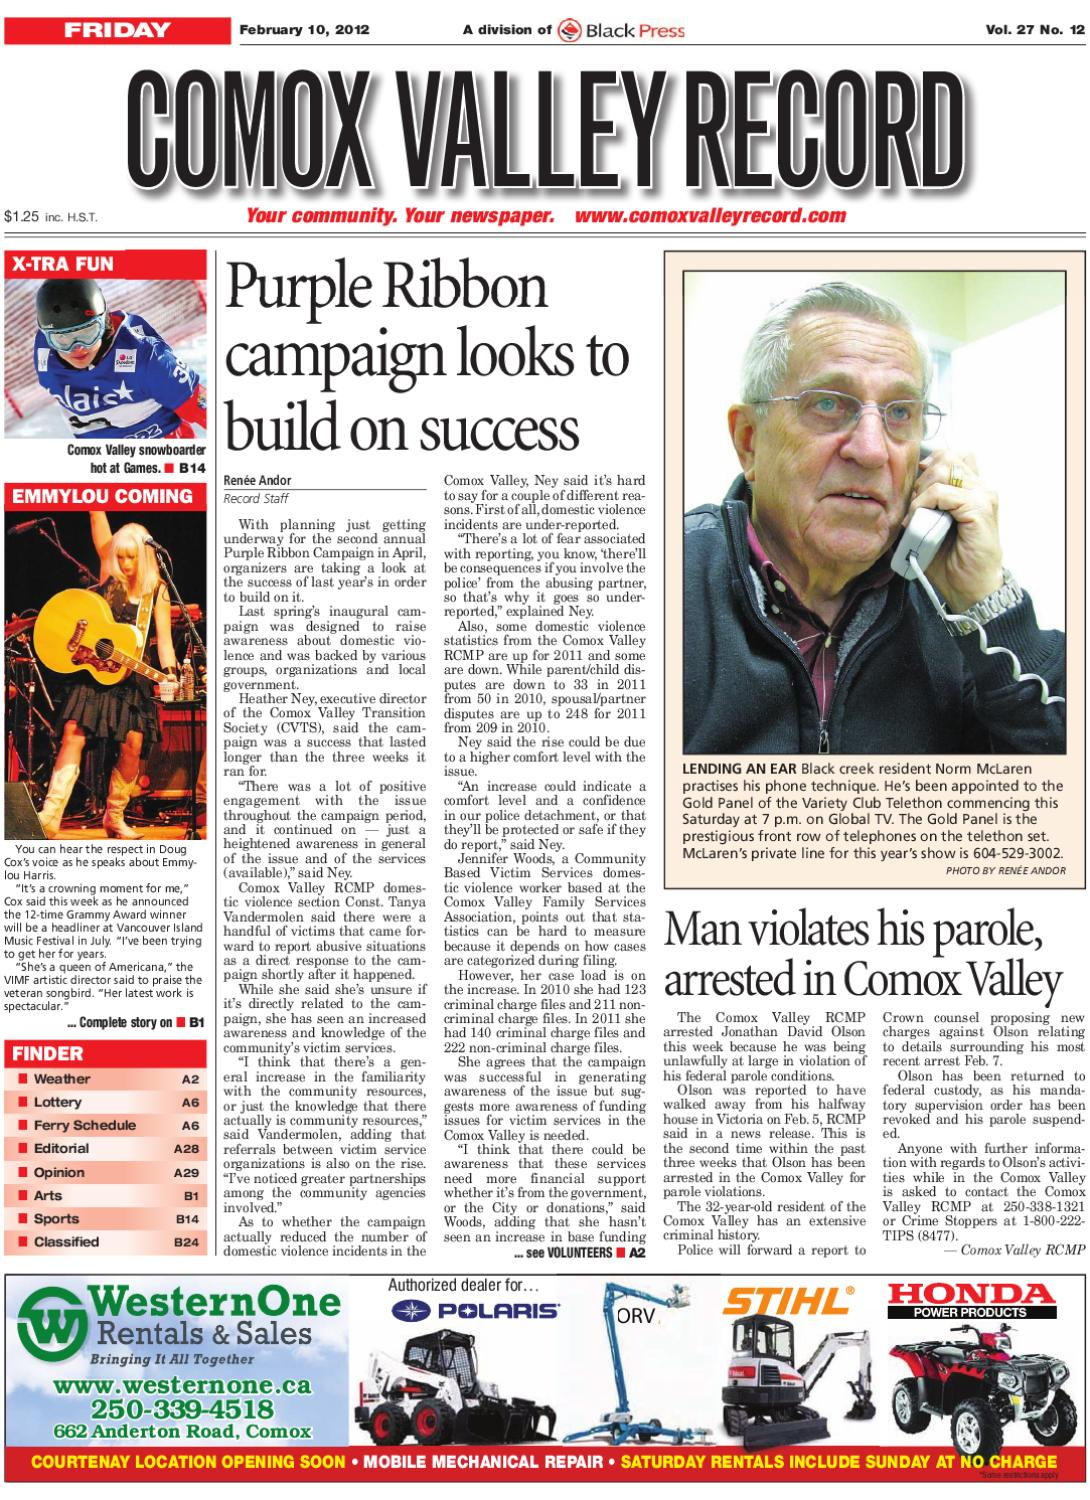 Friday, February 10 2012 Comox Valley Record by Comox Valley Record  Newspaper - issuu